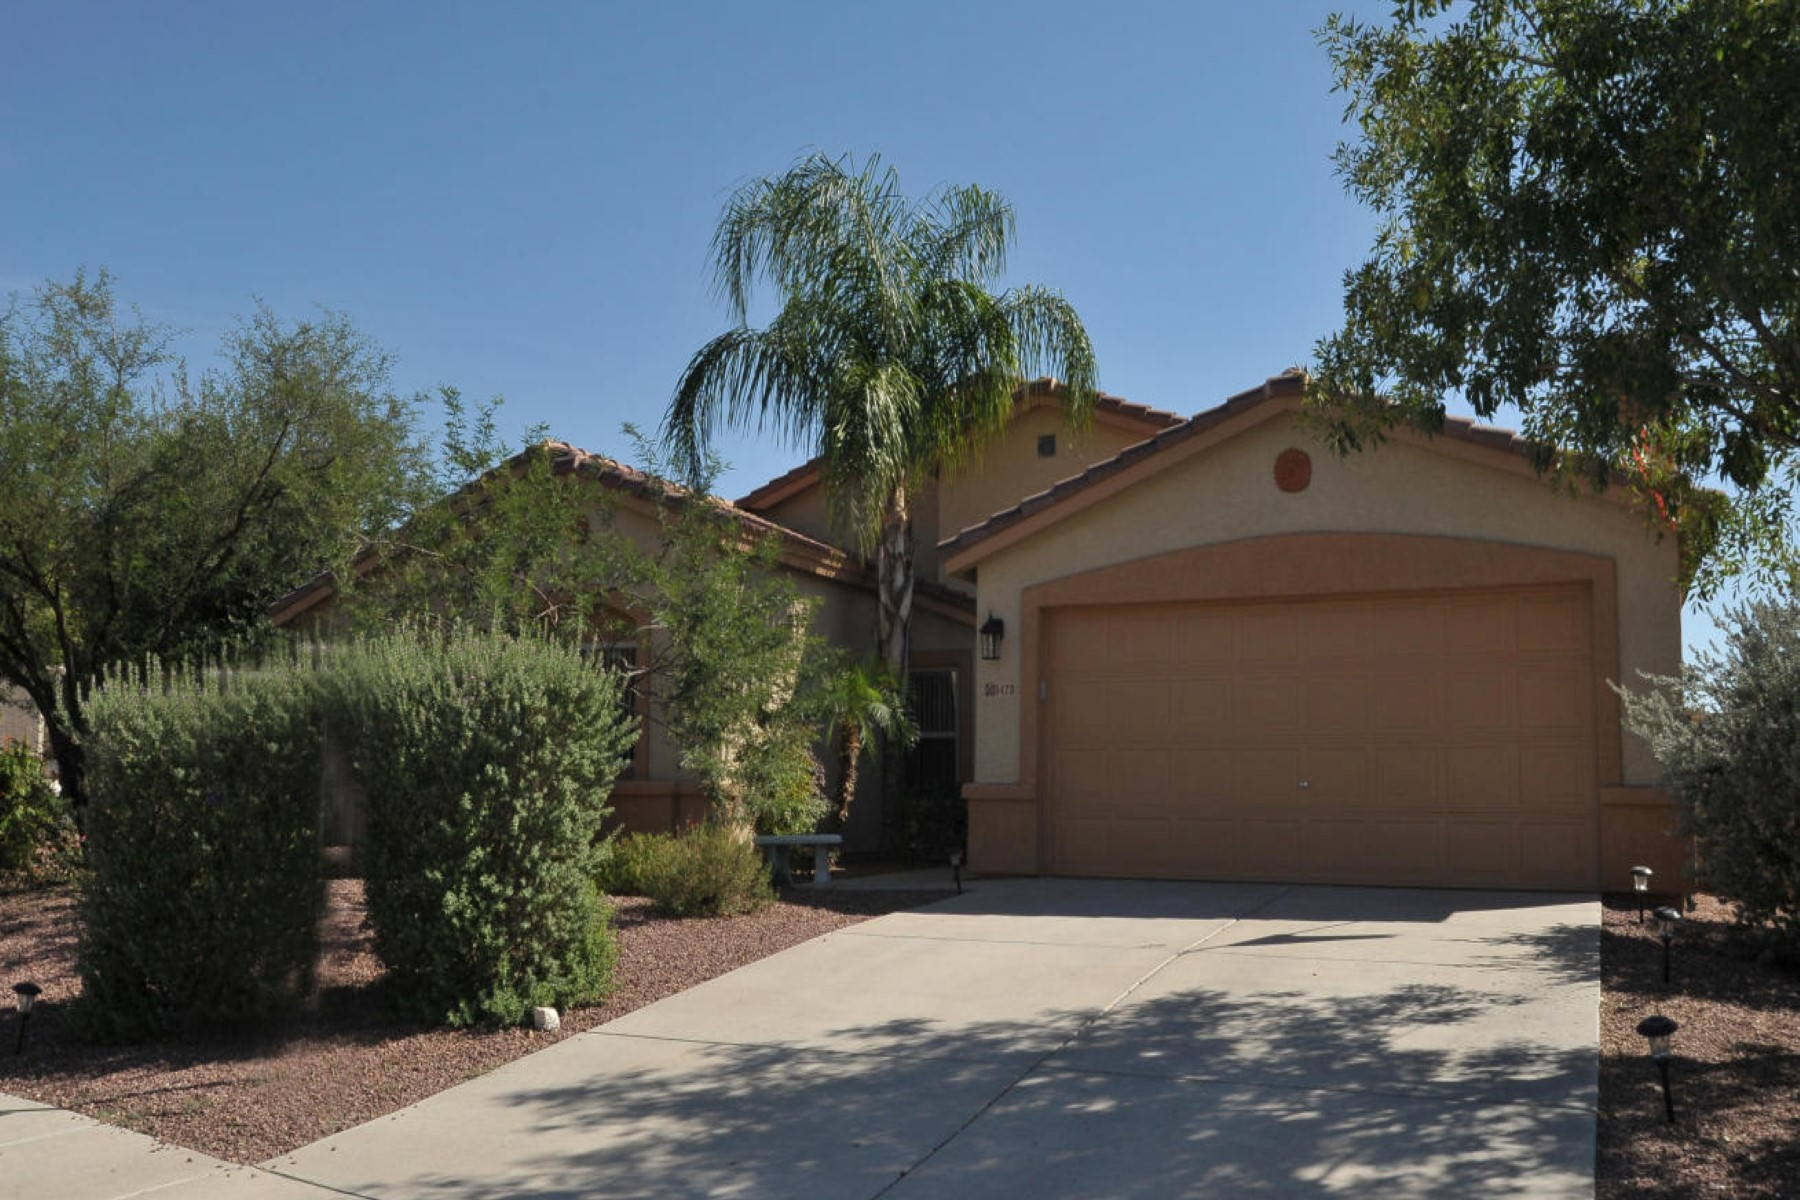 Moradia para Venda às Great home with great access to I-10 5473 W Carriage Drive Tucson, Arizona 85742 Estados Unidos